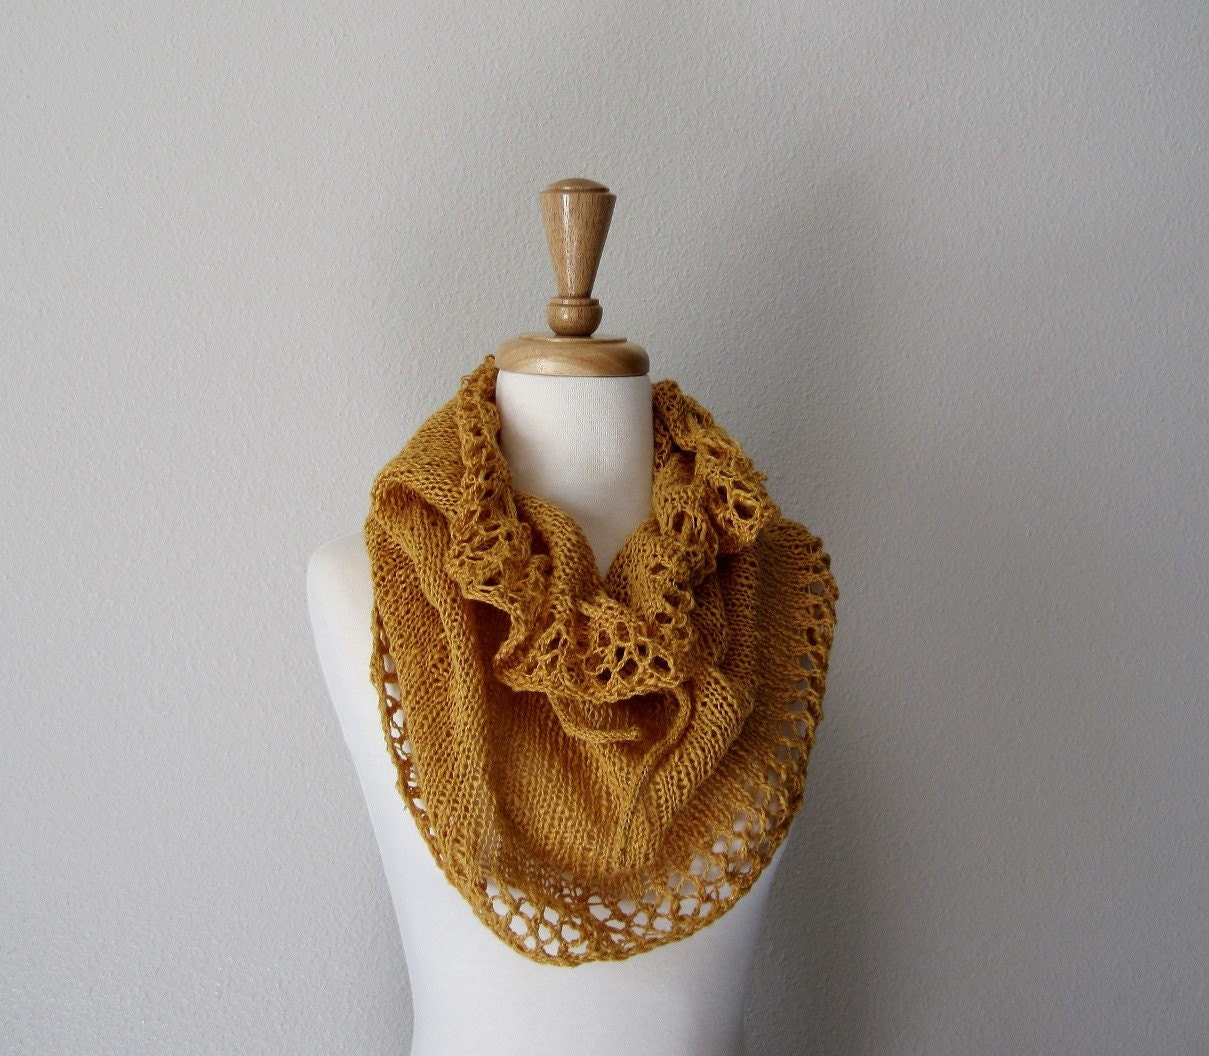 The Conversion Cowl - Hand Knit Snood, Cowl, Skirt, or Capelet